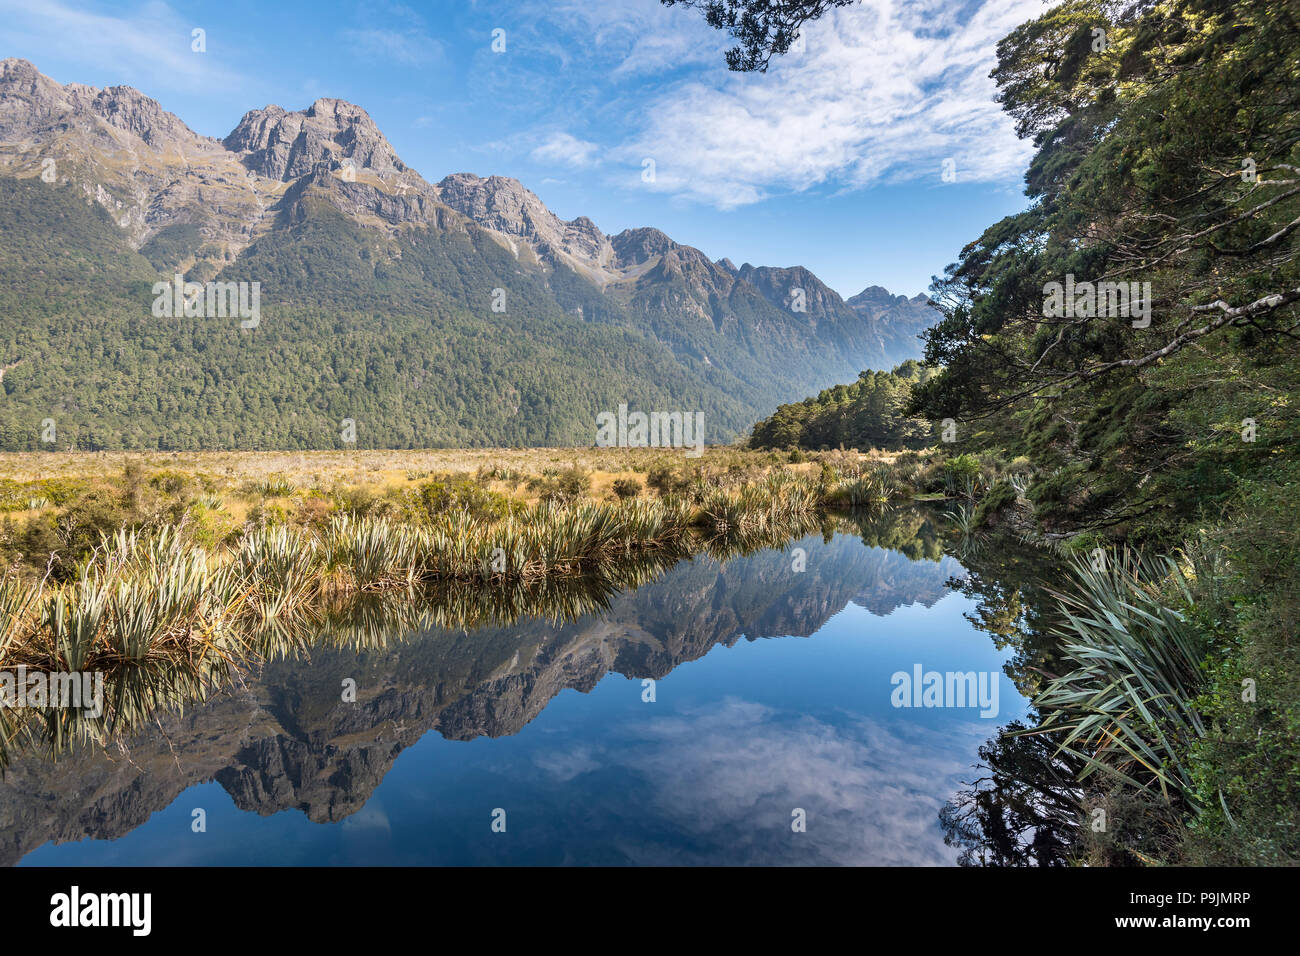 Mirror Lake with water reflections of the mountains, Fiordland National Park, Milford Highway, Southland, New Zealand Stock Photo